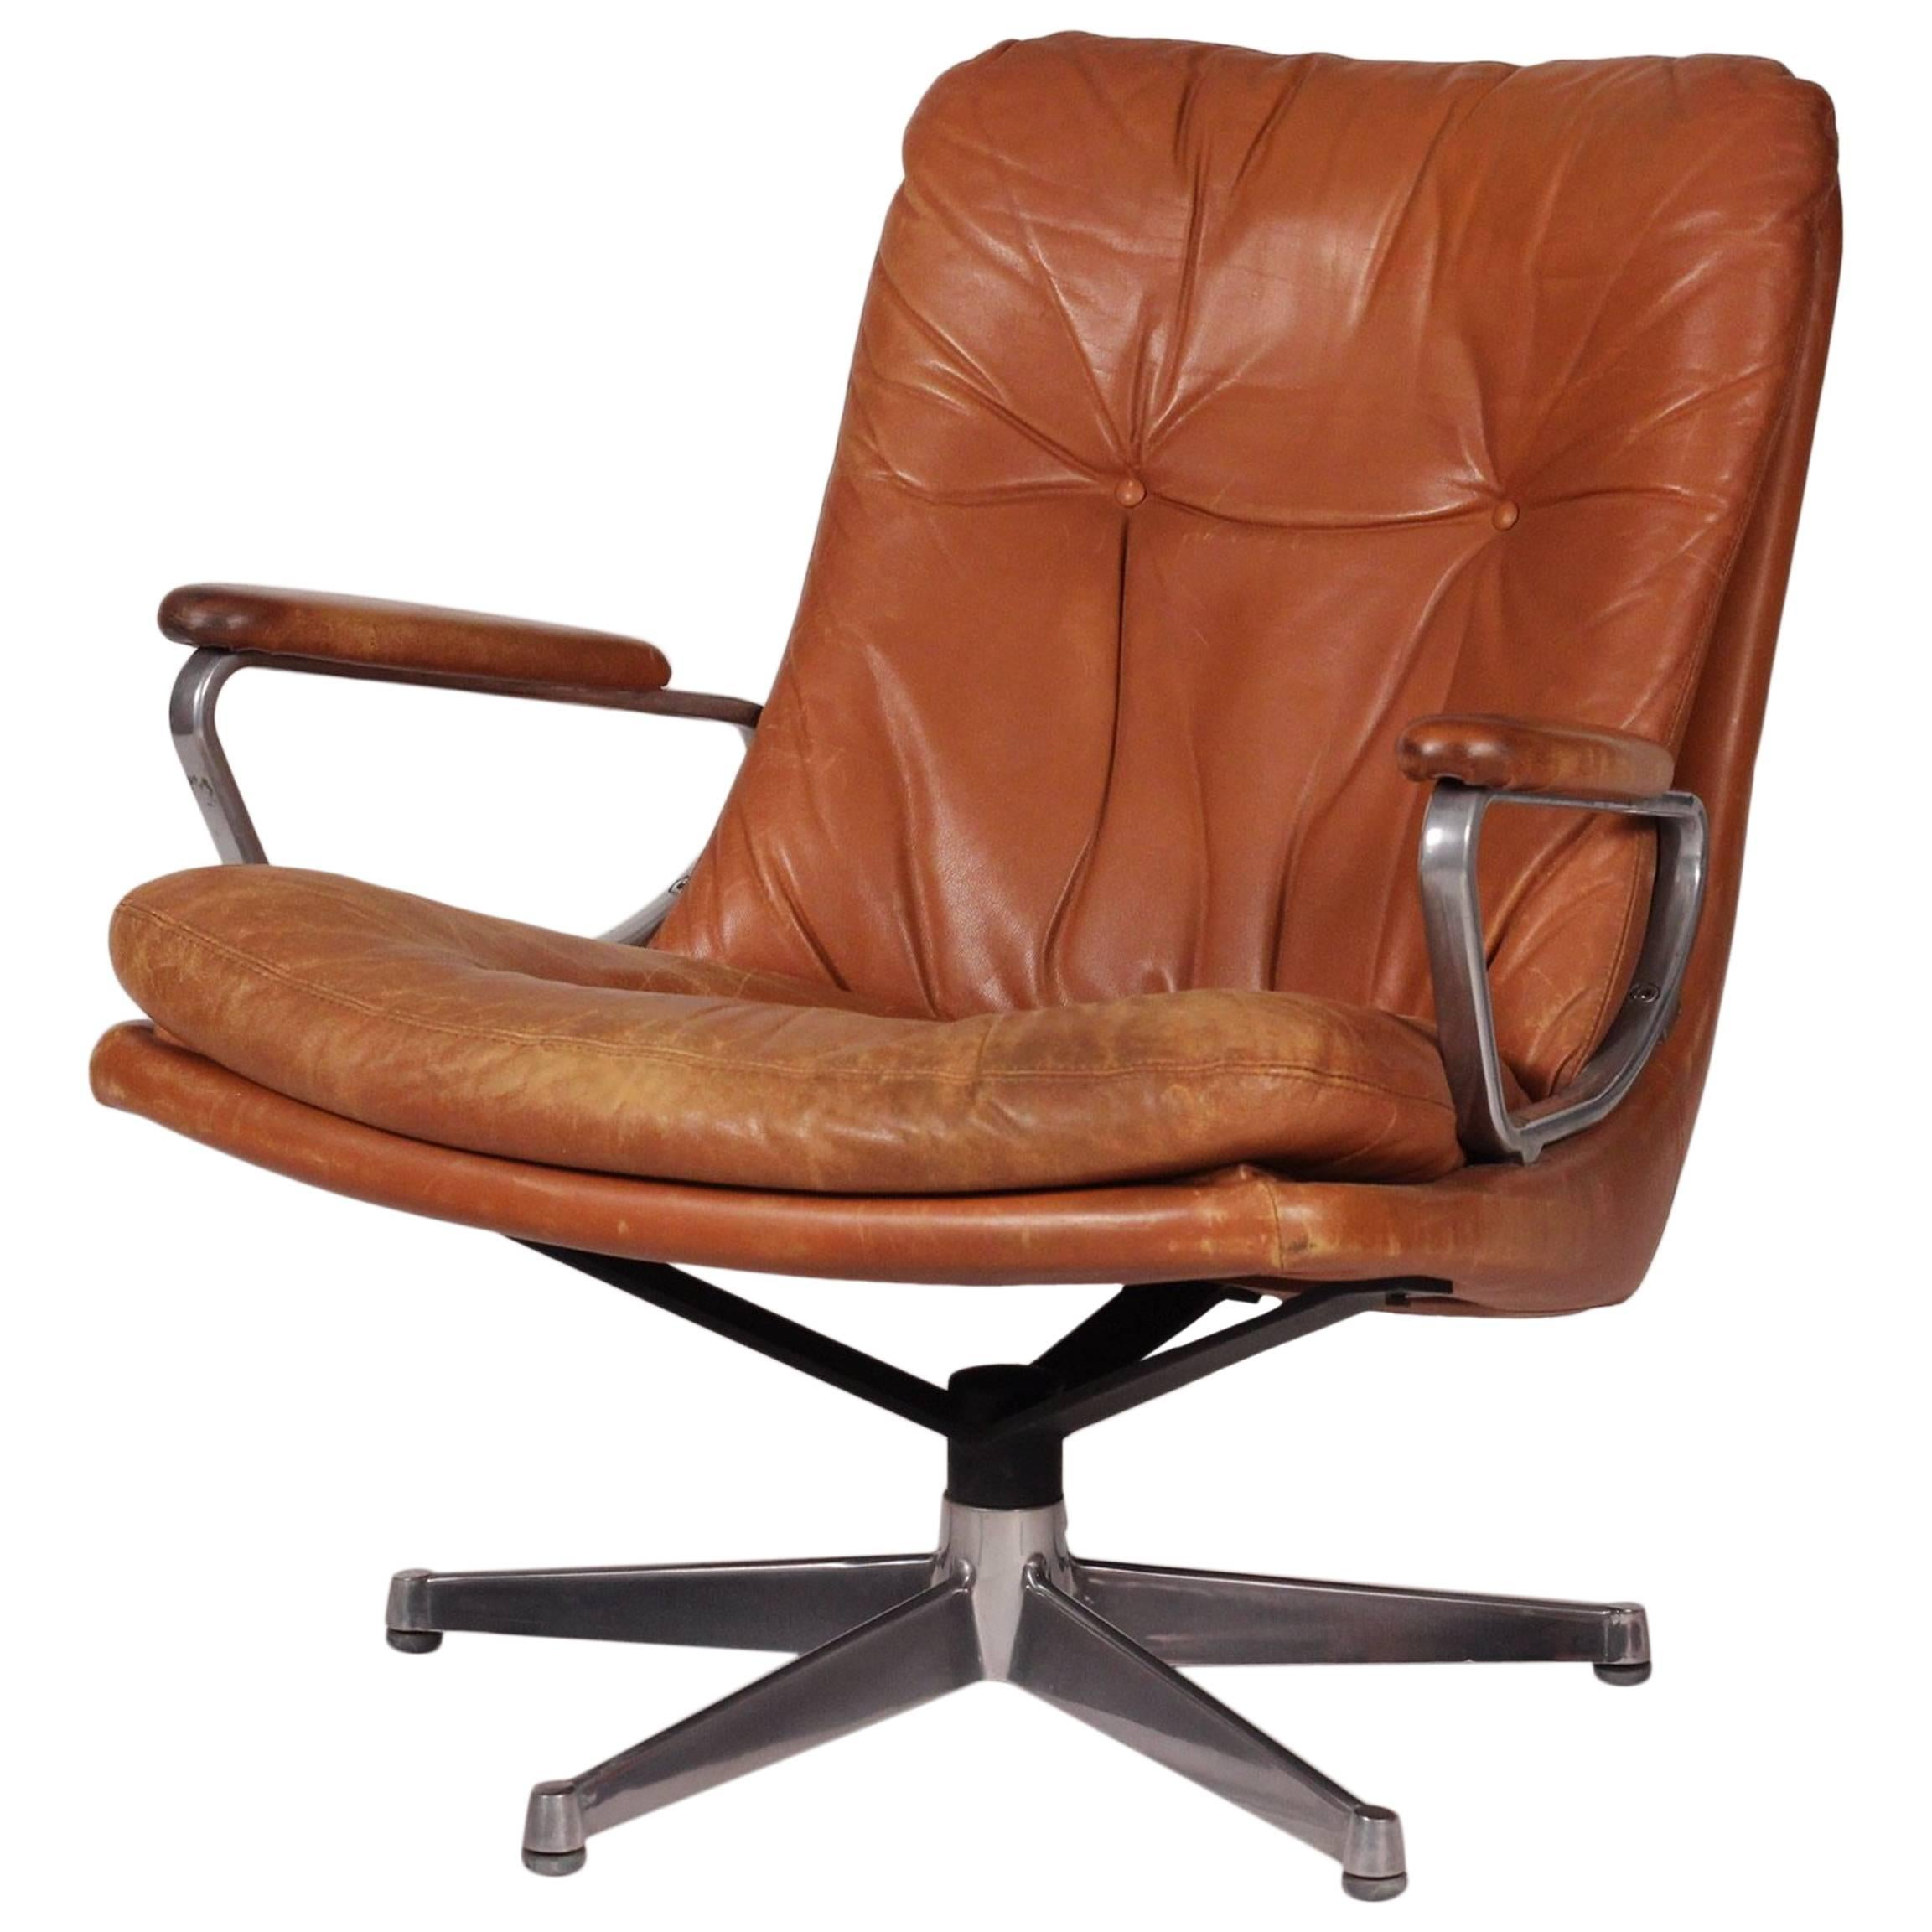 Modern leather armchair Modern Black Midcentury Modern Leather Lounge Chair Designed By André Vandenbeuck For Sale 1stdibs Midcentury Modern Leather Lounge Chair Designed By André